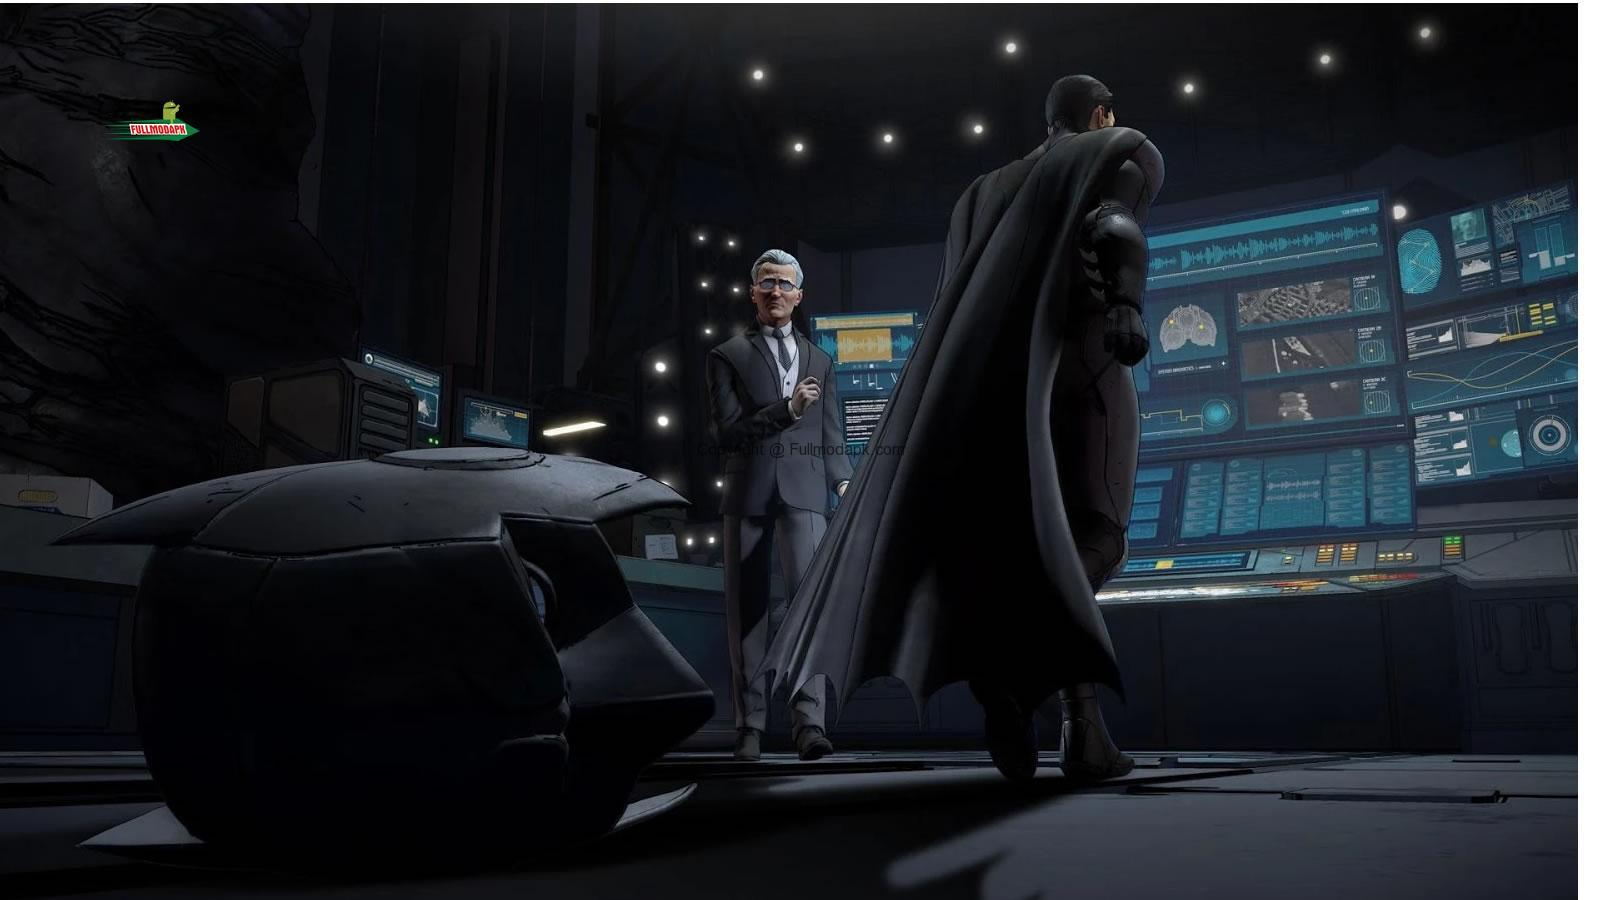 Batman - The Telltale Series v1.63 APK Download Free